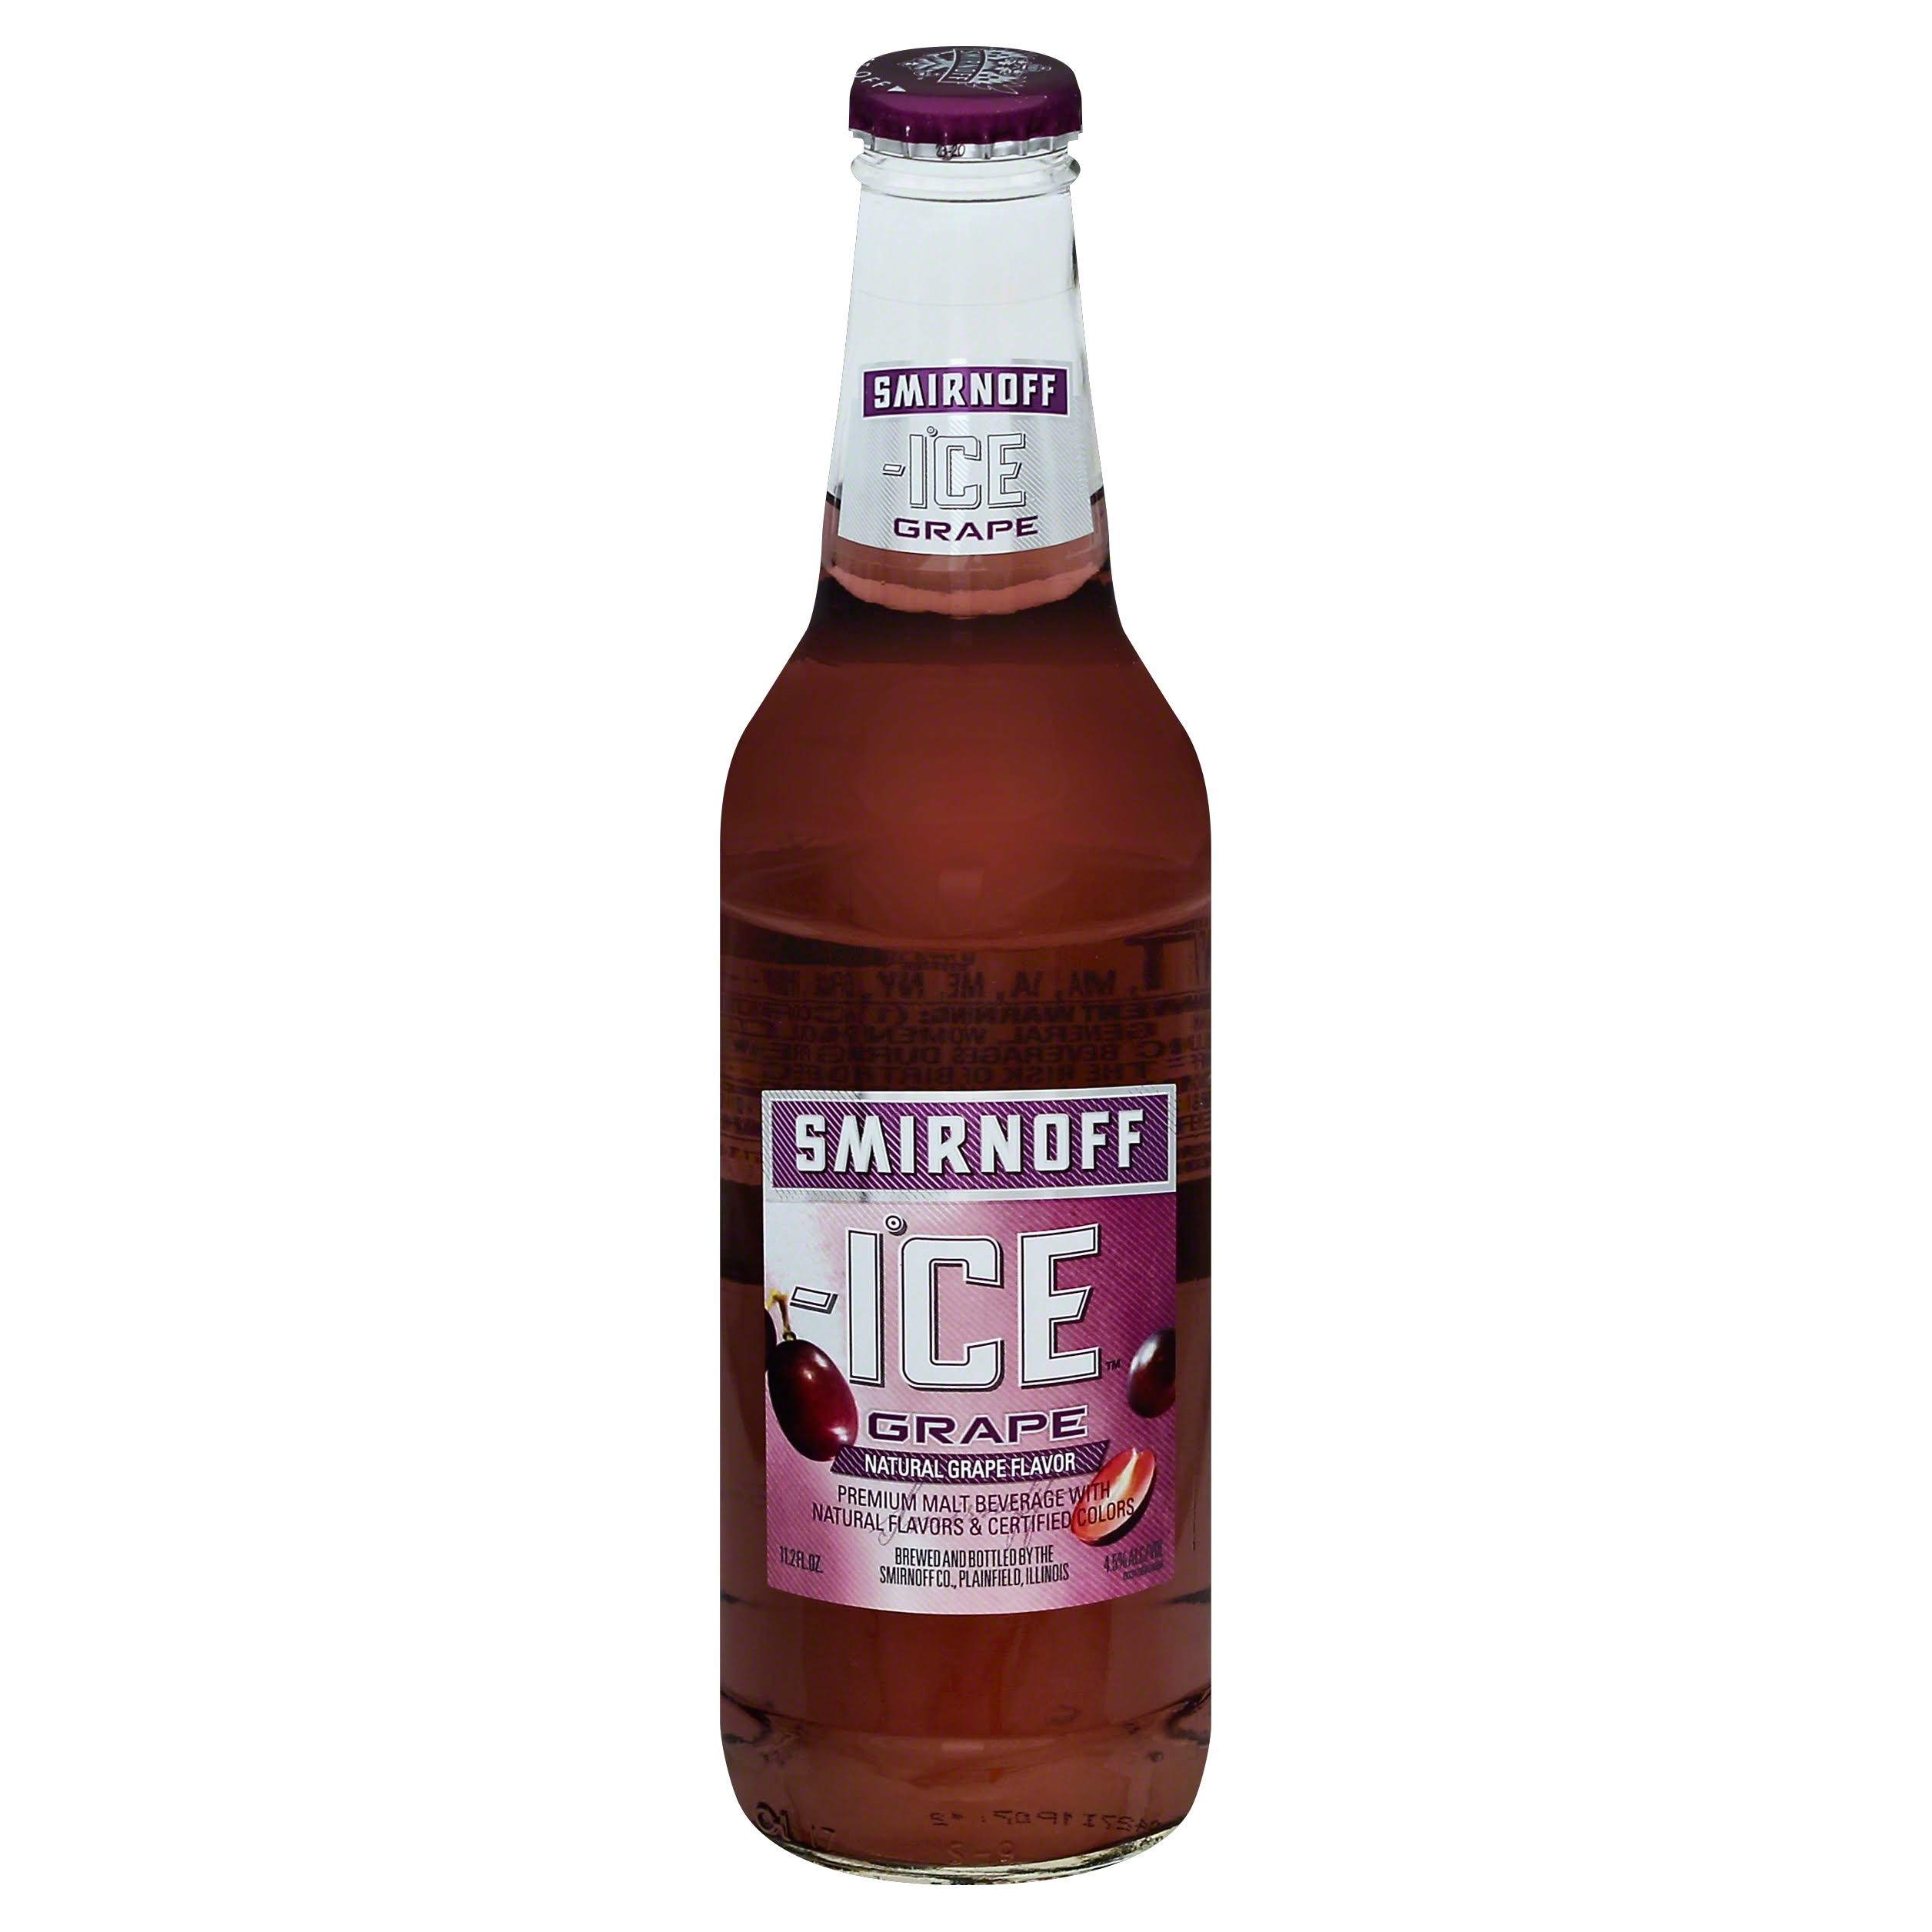 Smirnoff Ice Premium Malt Beverage - Wild Grape